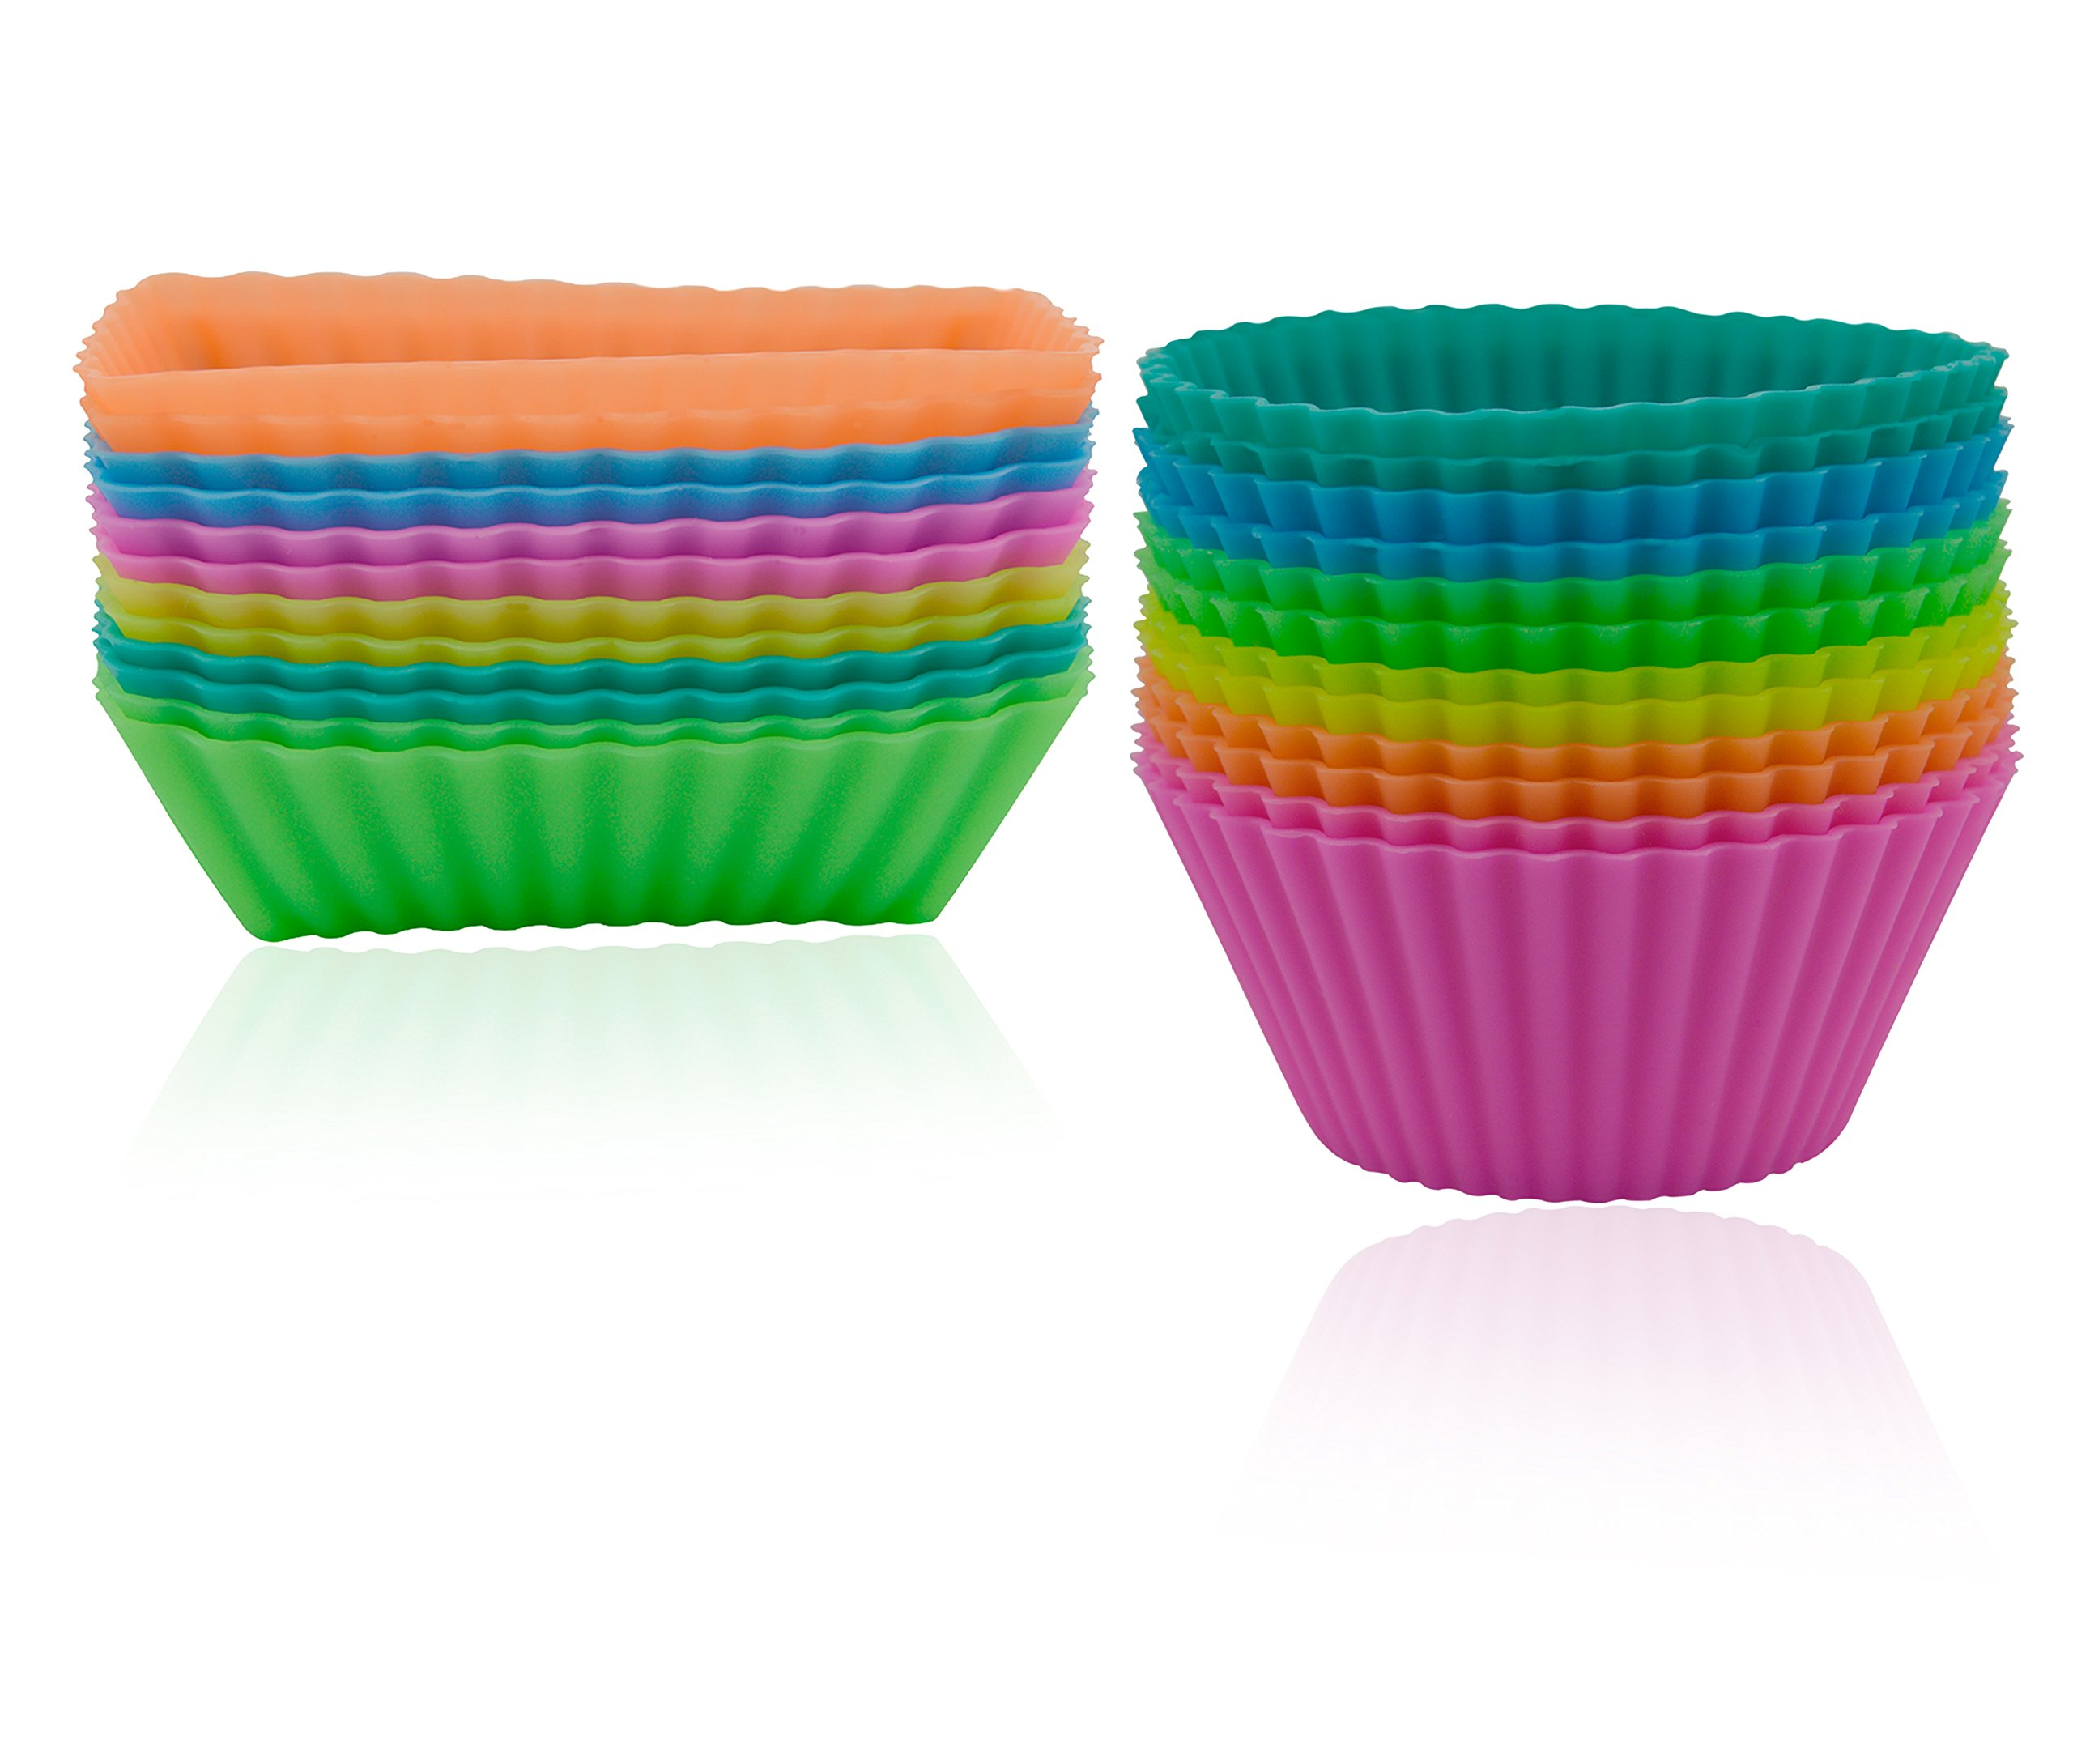 Ipow Silicone Cupcake Baking Muffin Cups Liners Molds Sets24Pack Multi 1 14